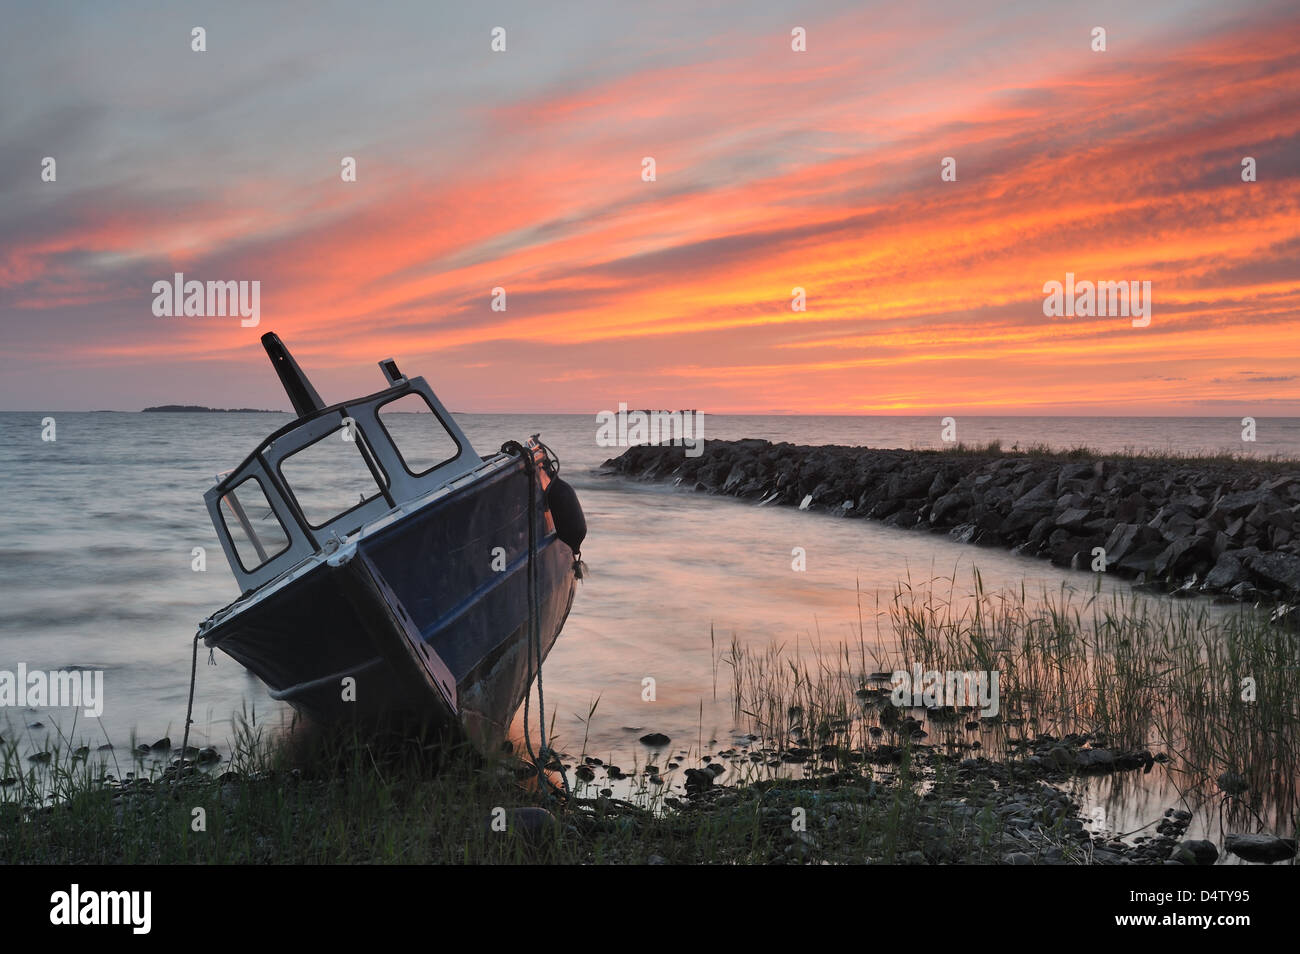 Moored fishing boat on shore, Vänern, Sweden, Europe - Stock Image